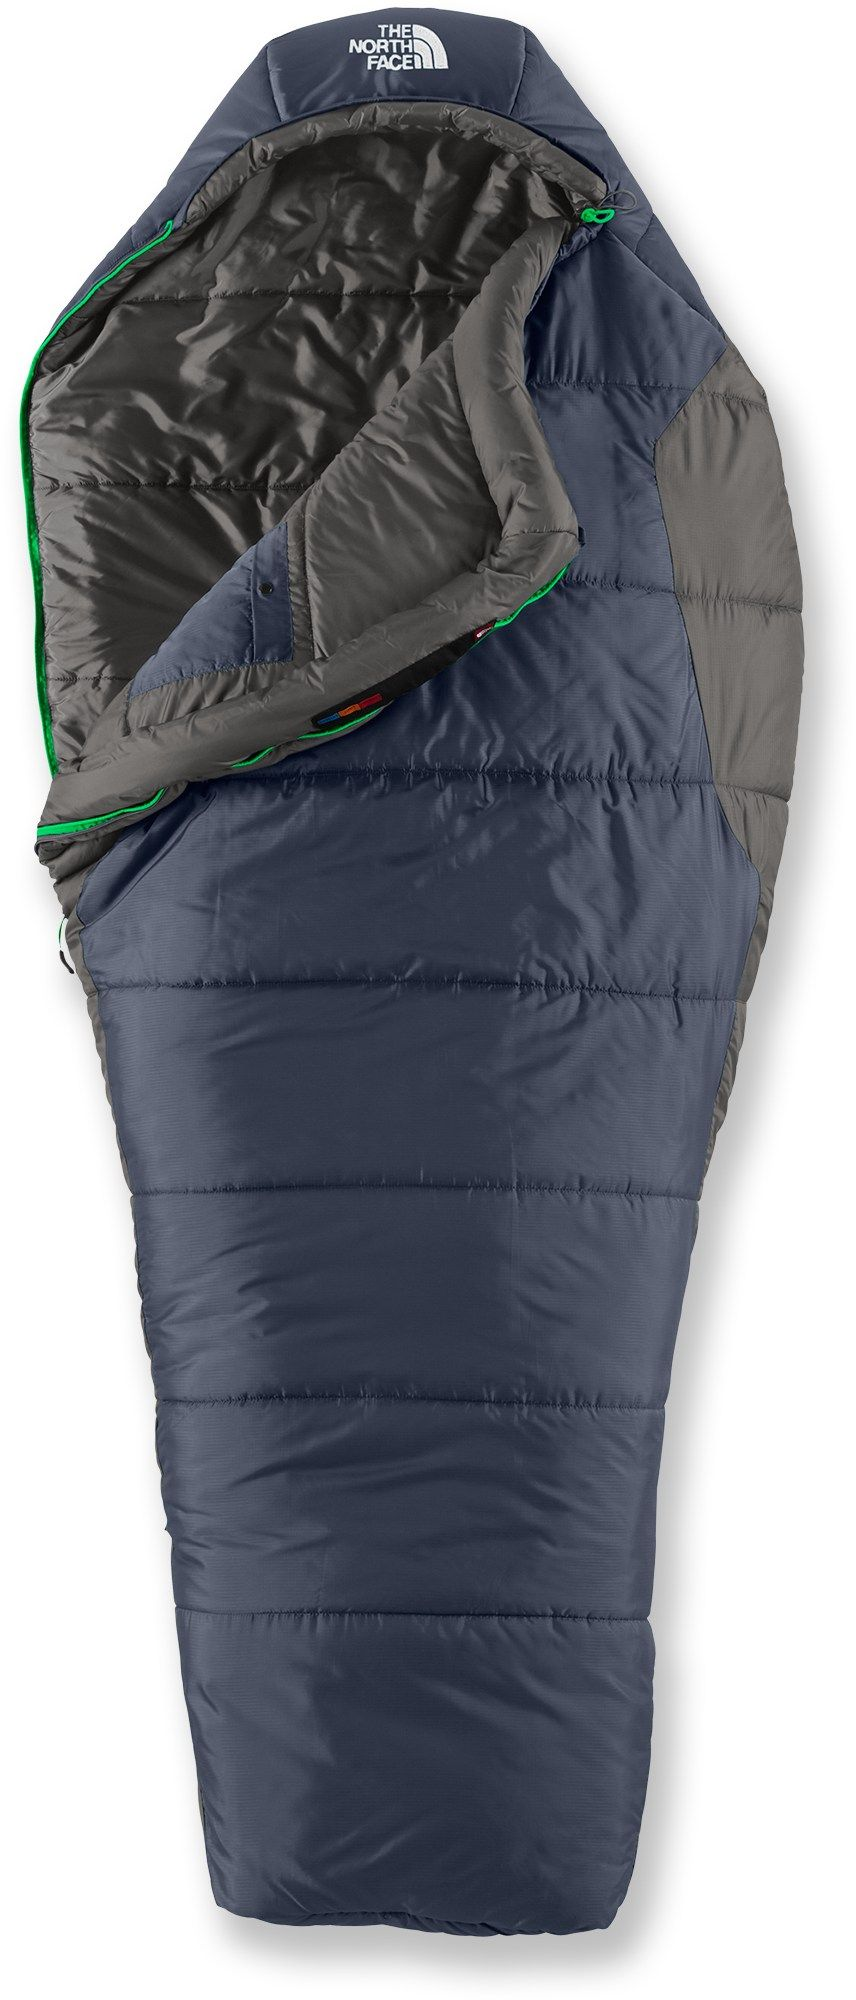 The North Face Aleutian 3s Sleeping Bag